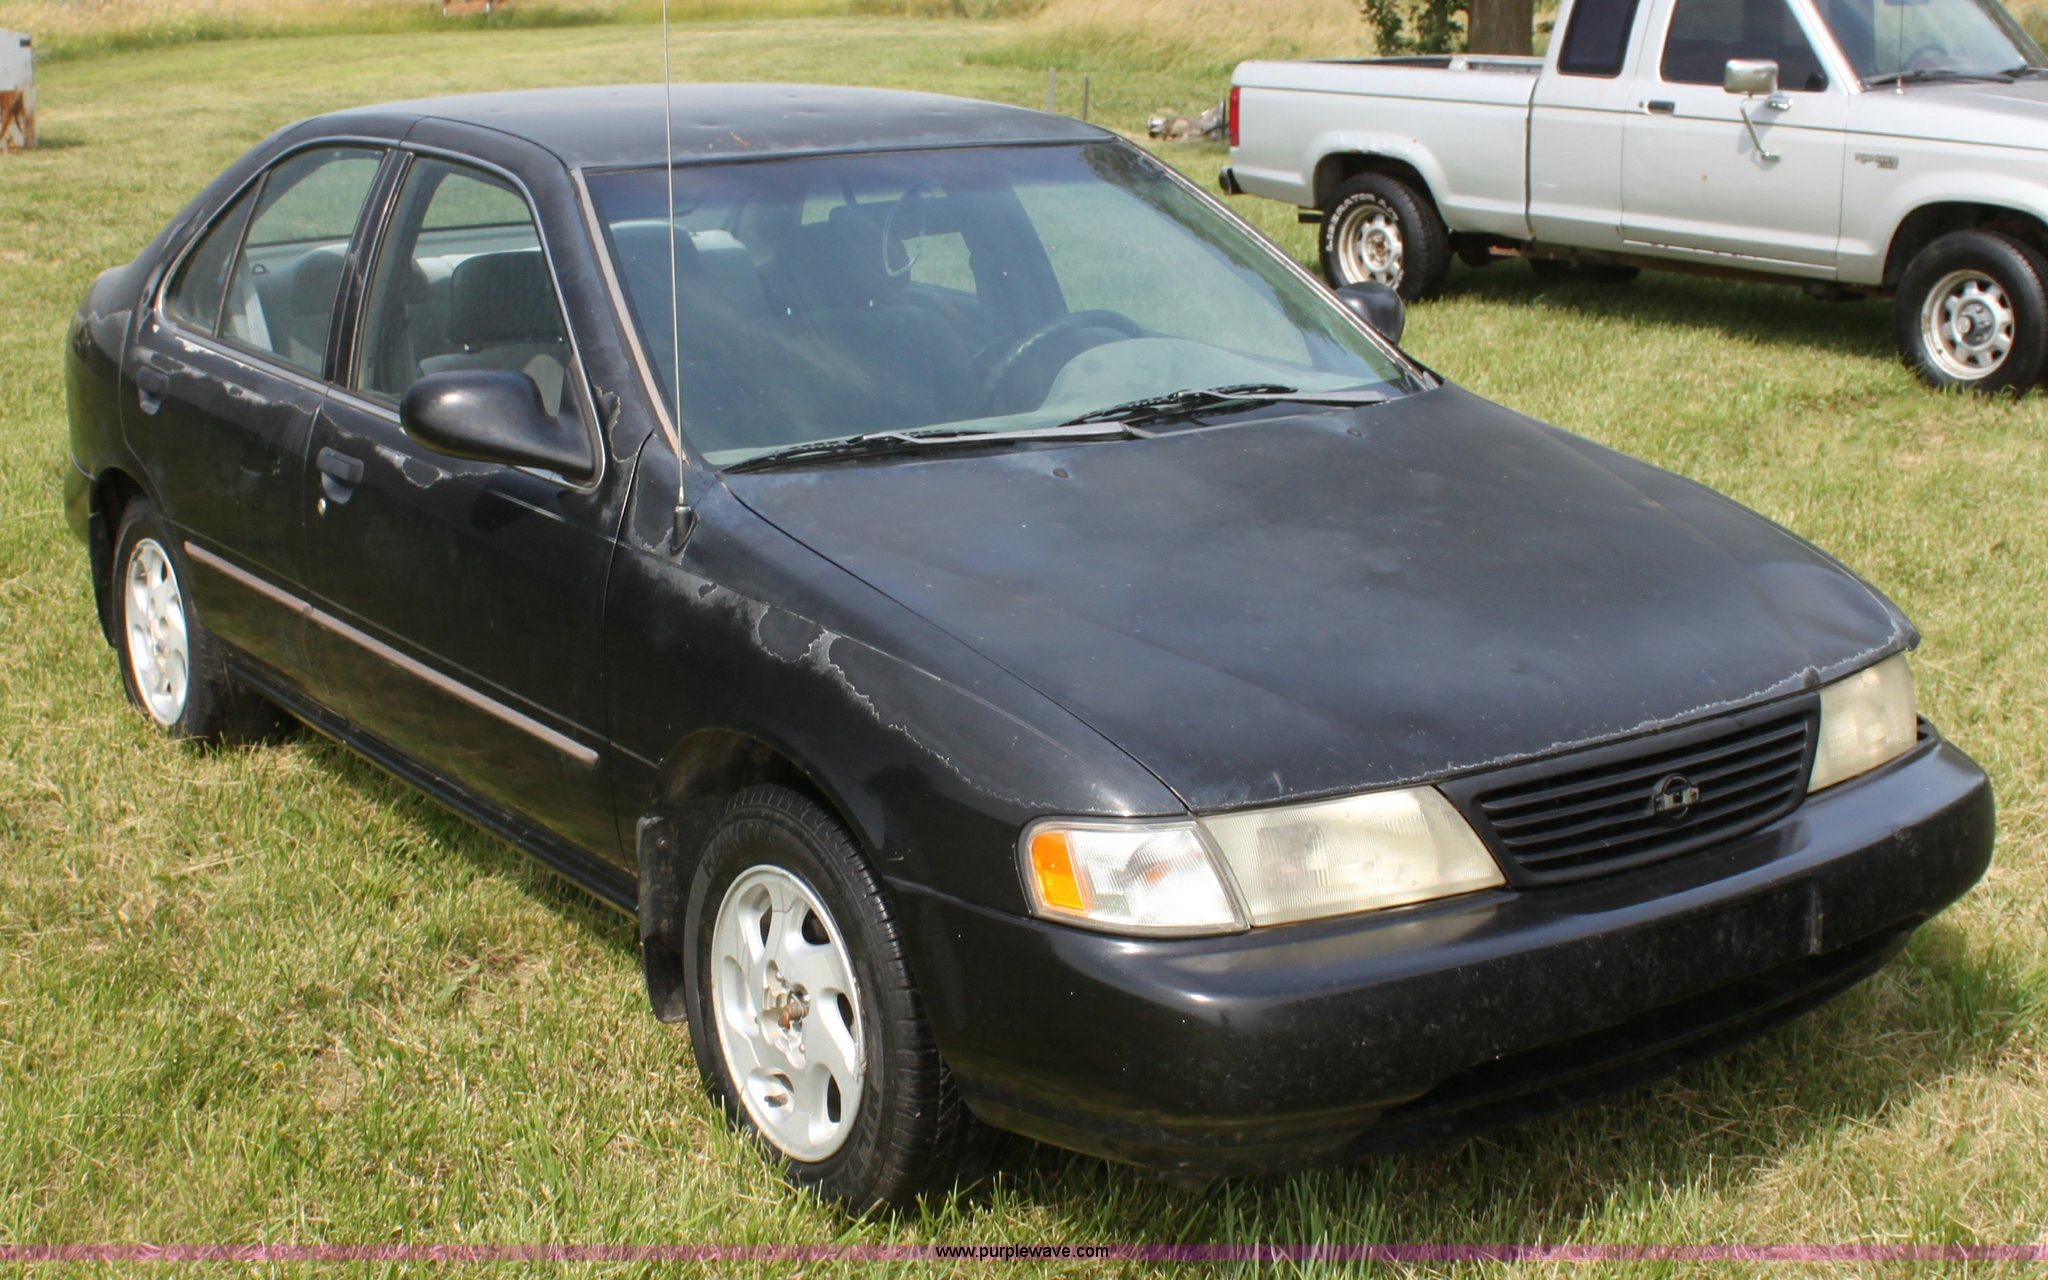 H7443 image for item H7443 1997 Nissan Sentra GXE